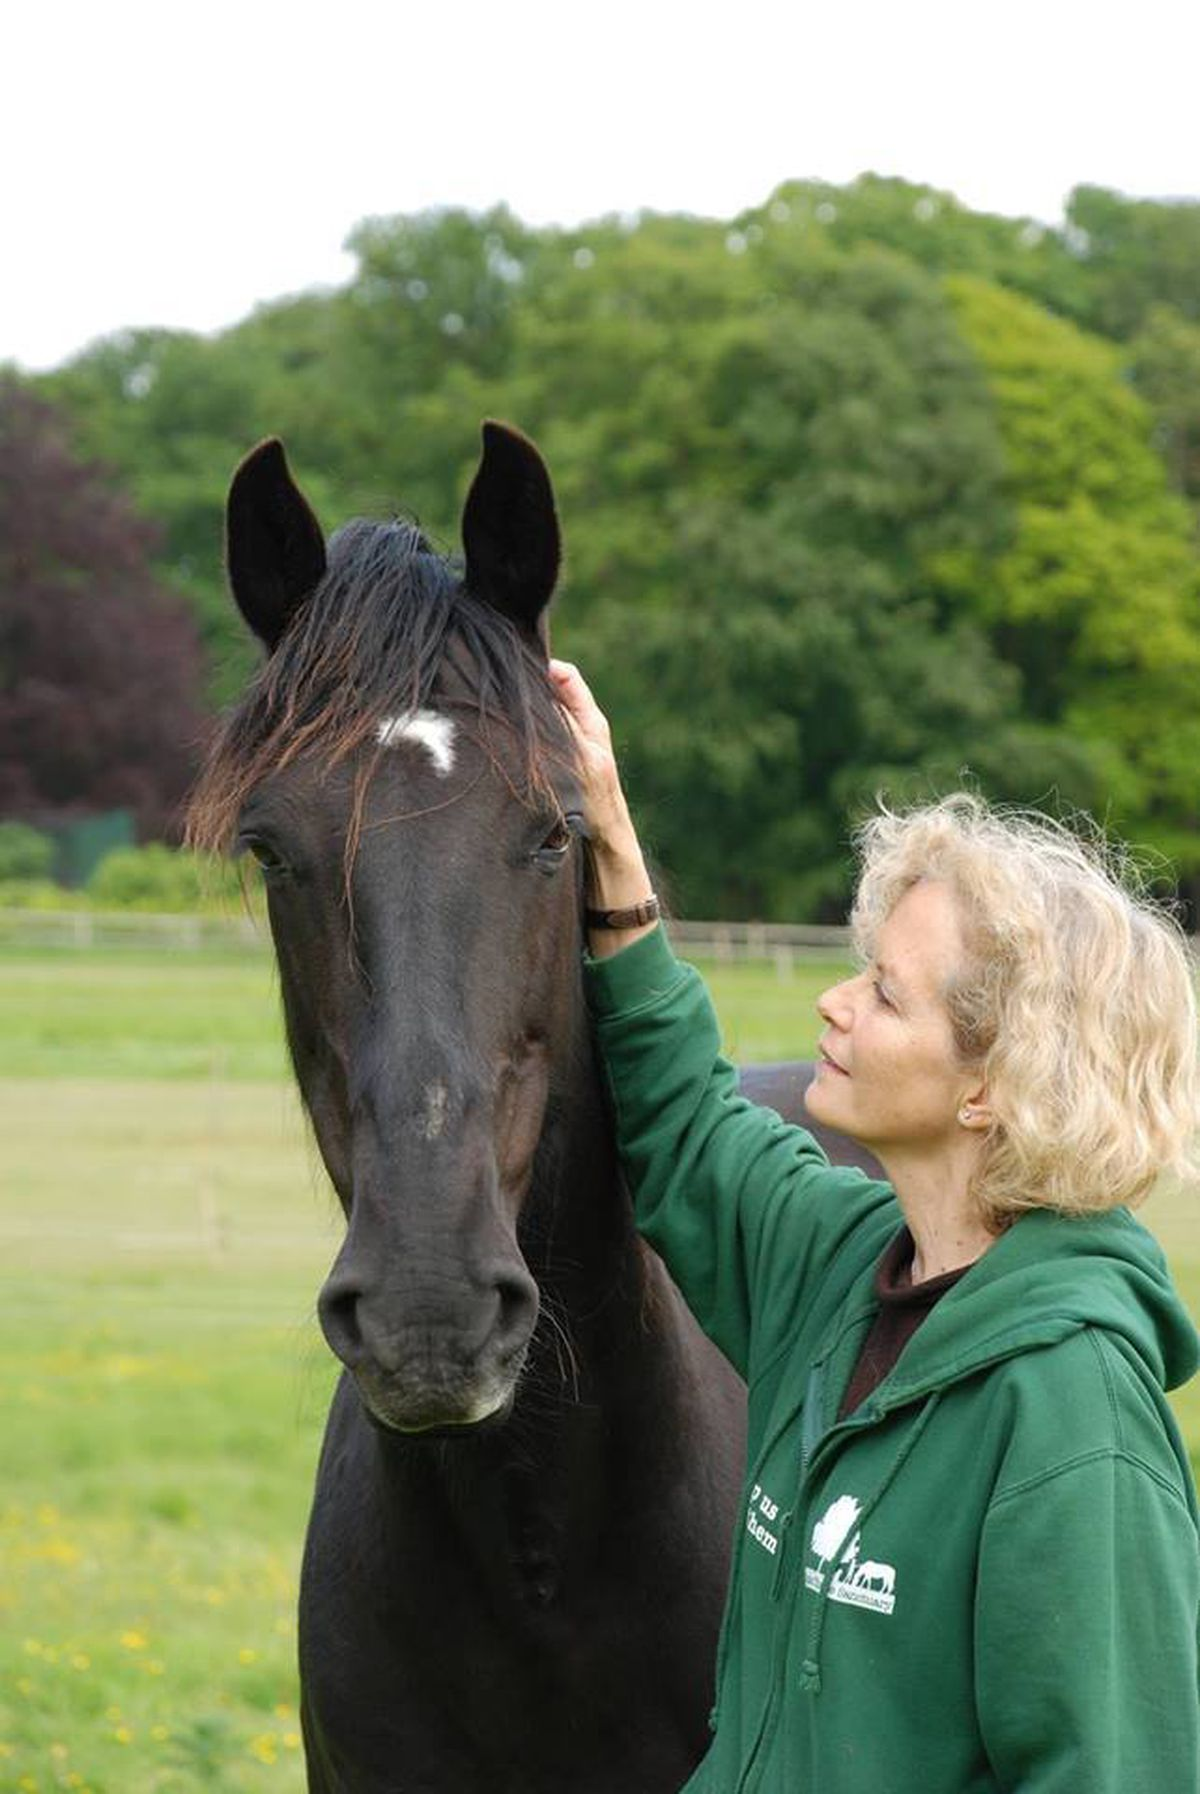 The actress is also a founder of the Mane Chance Horse sanctuary in Surrey